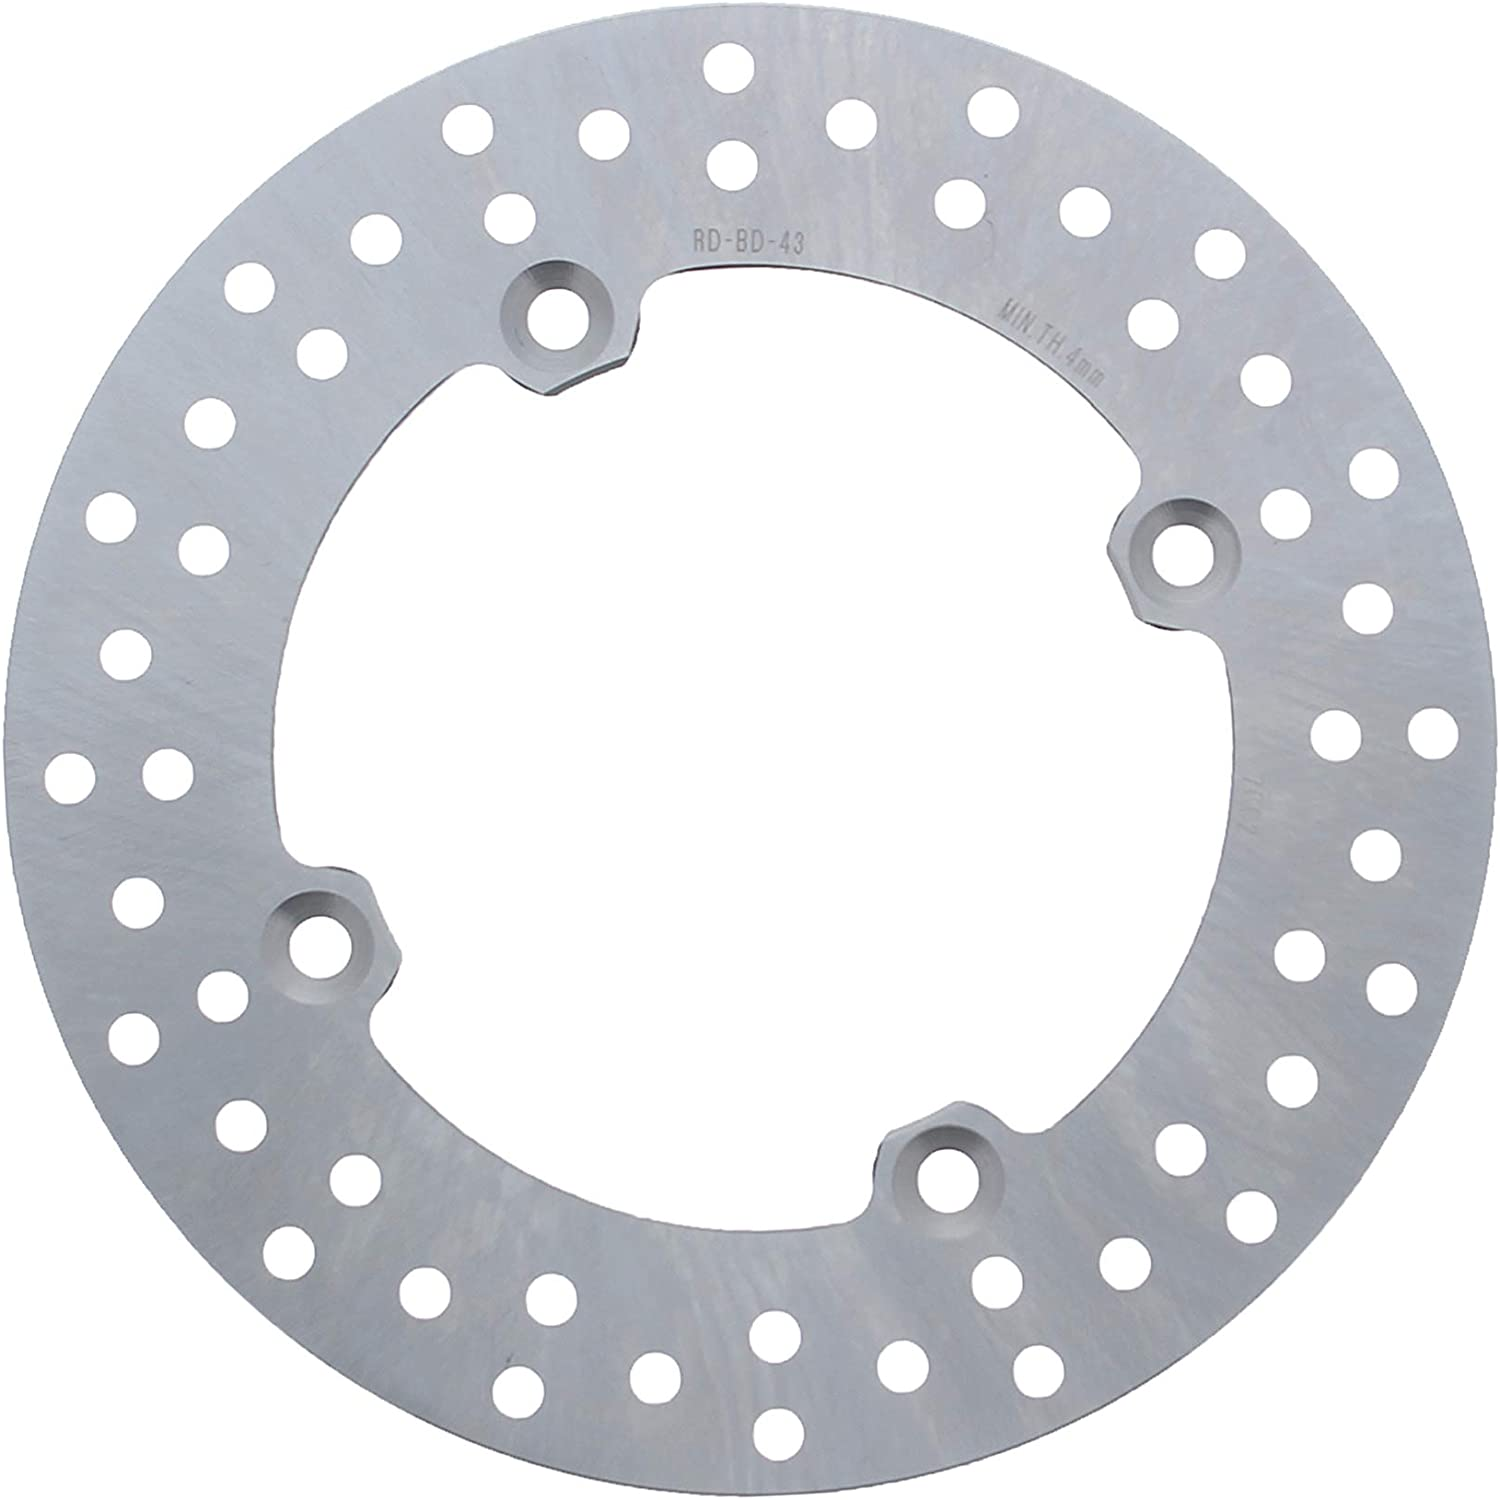 2014 2015 fits Can-Am Commander XTP 1000 4x4 Rear Brake Rotor Disc X1